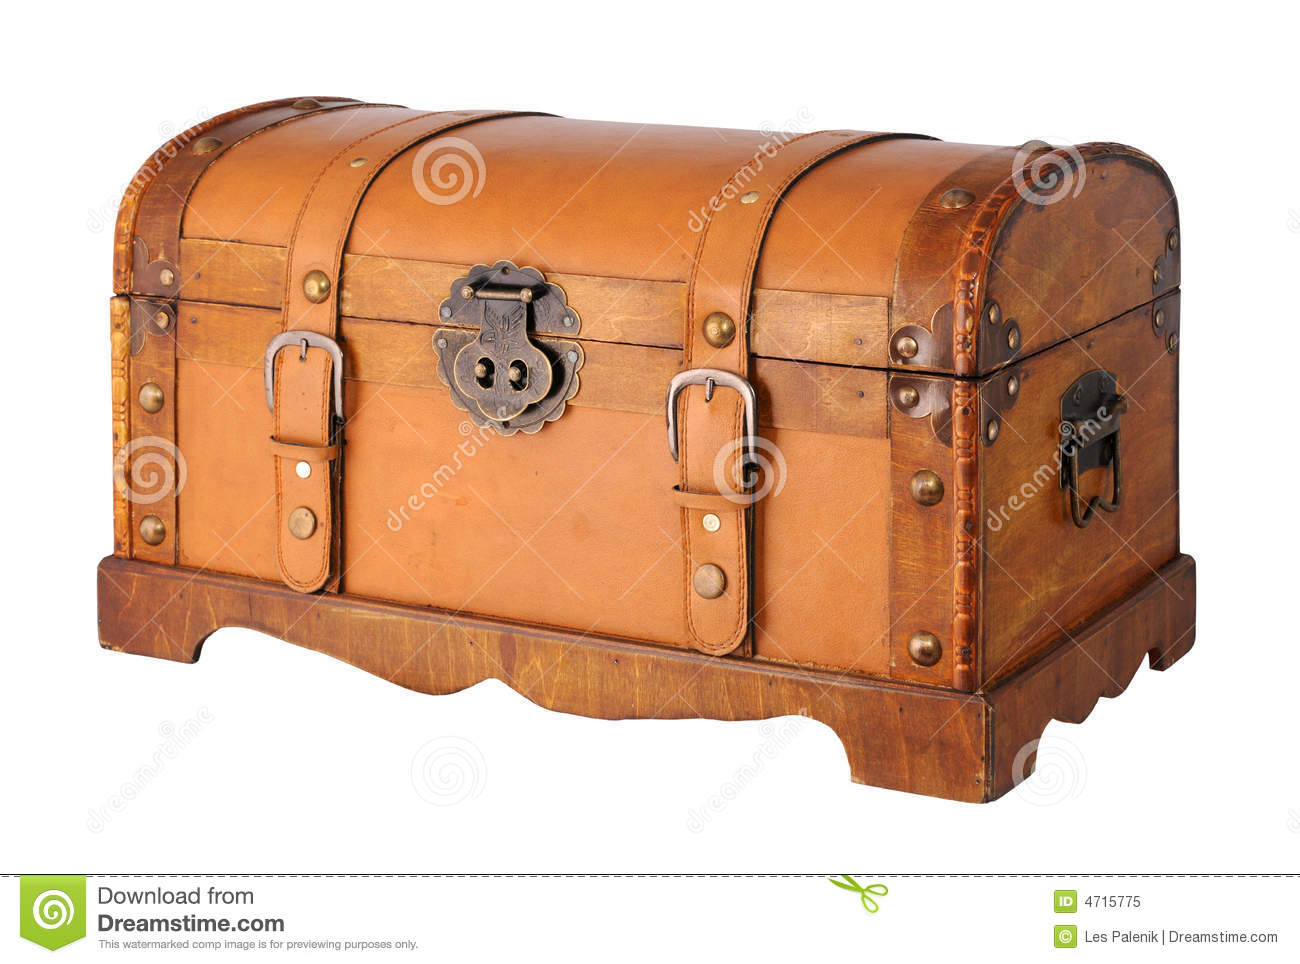 Wood And Leather Trunk Royalty Free Stock Photo - Image: 4715775